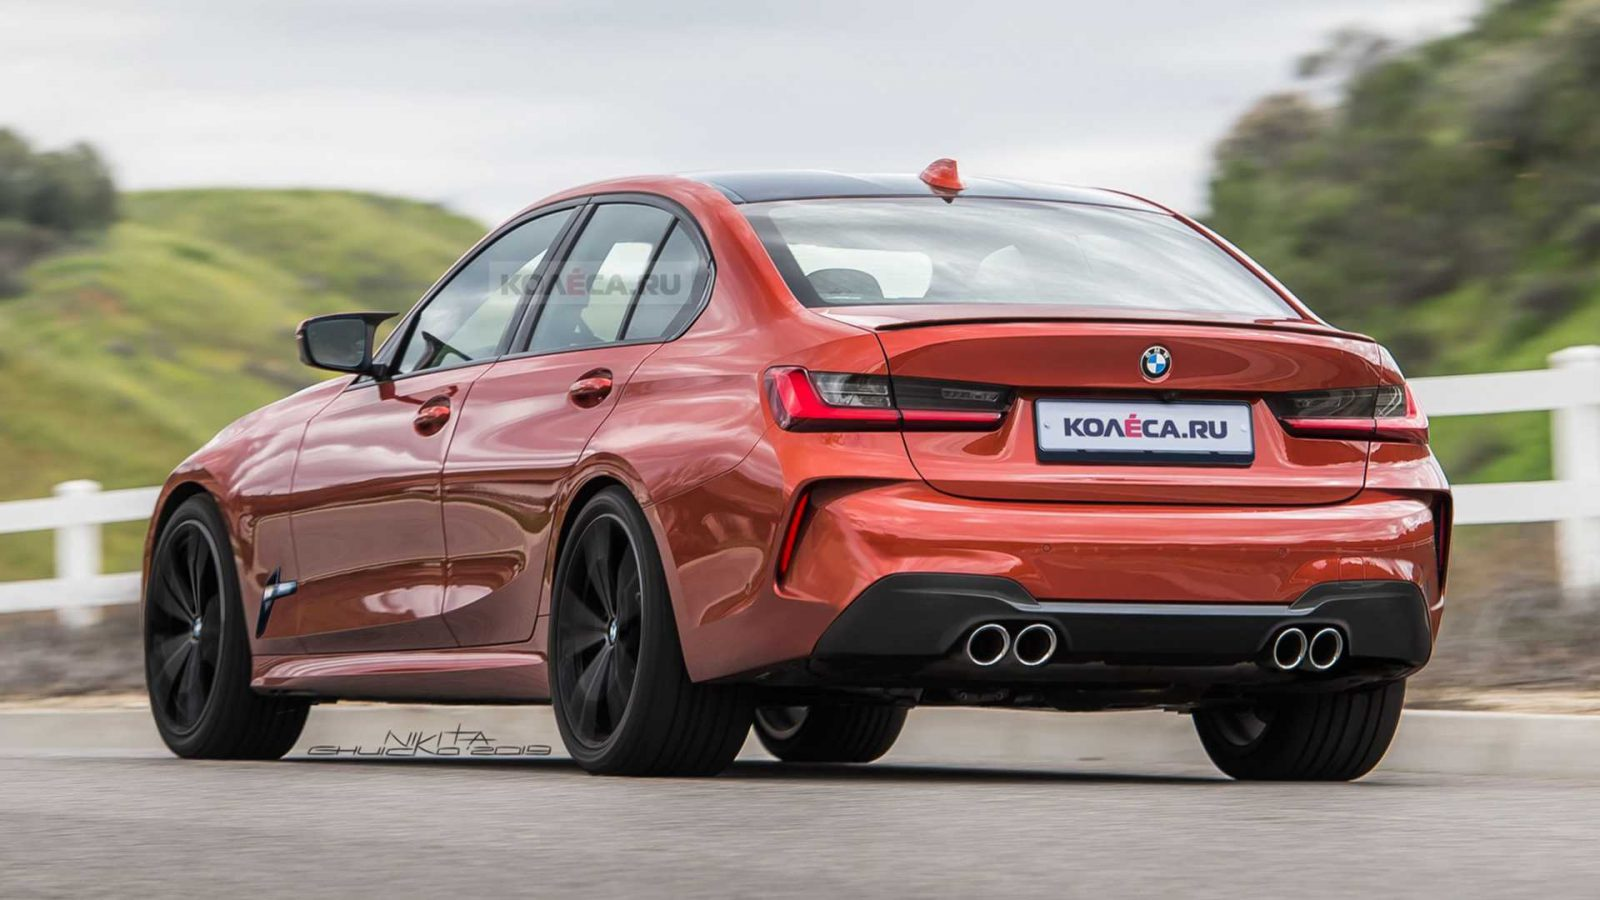 2020 BMW M3 to Feature Massive Grille